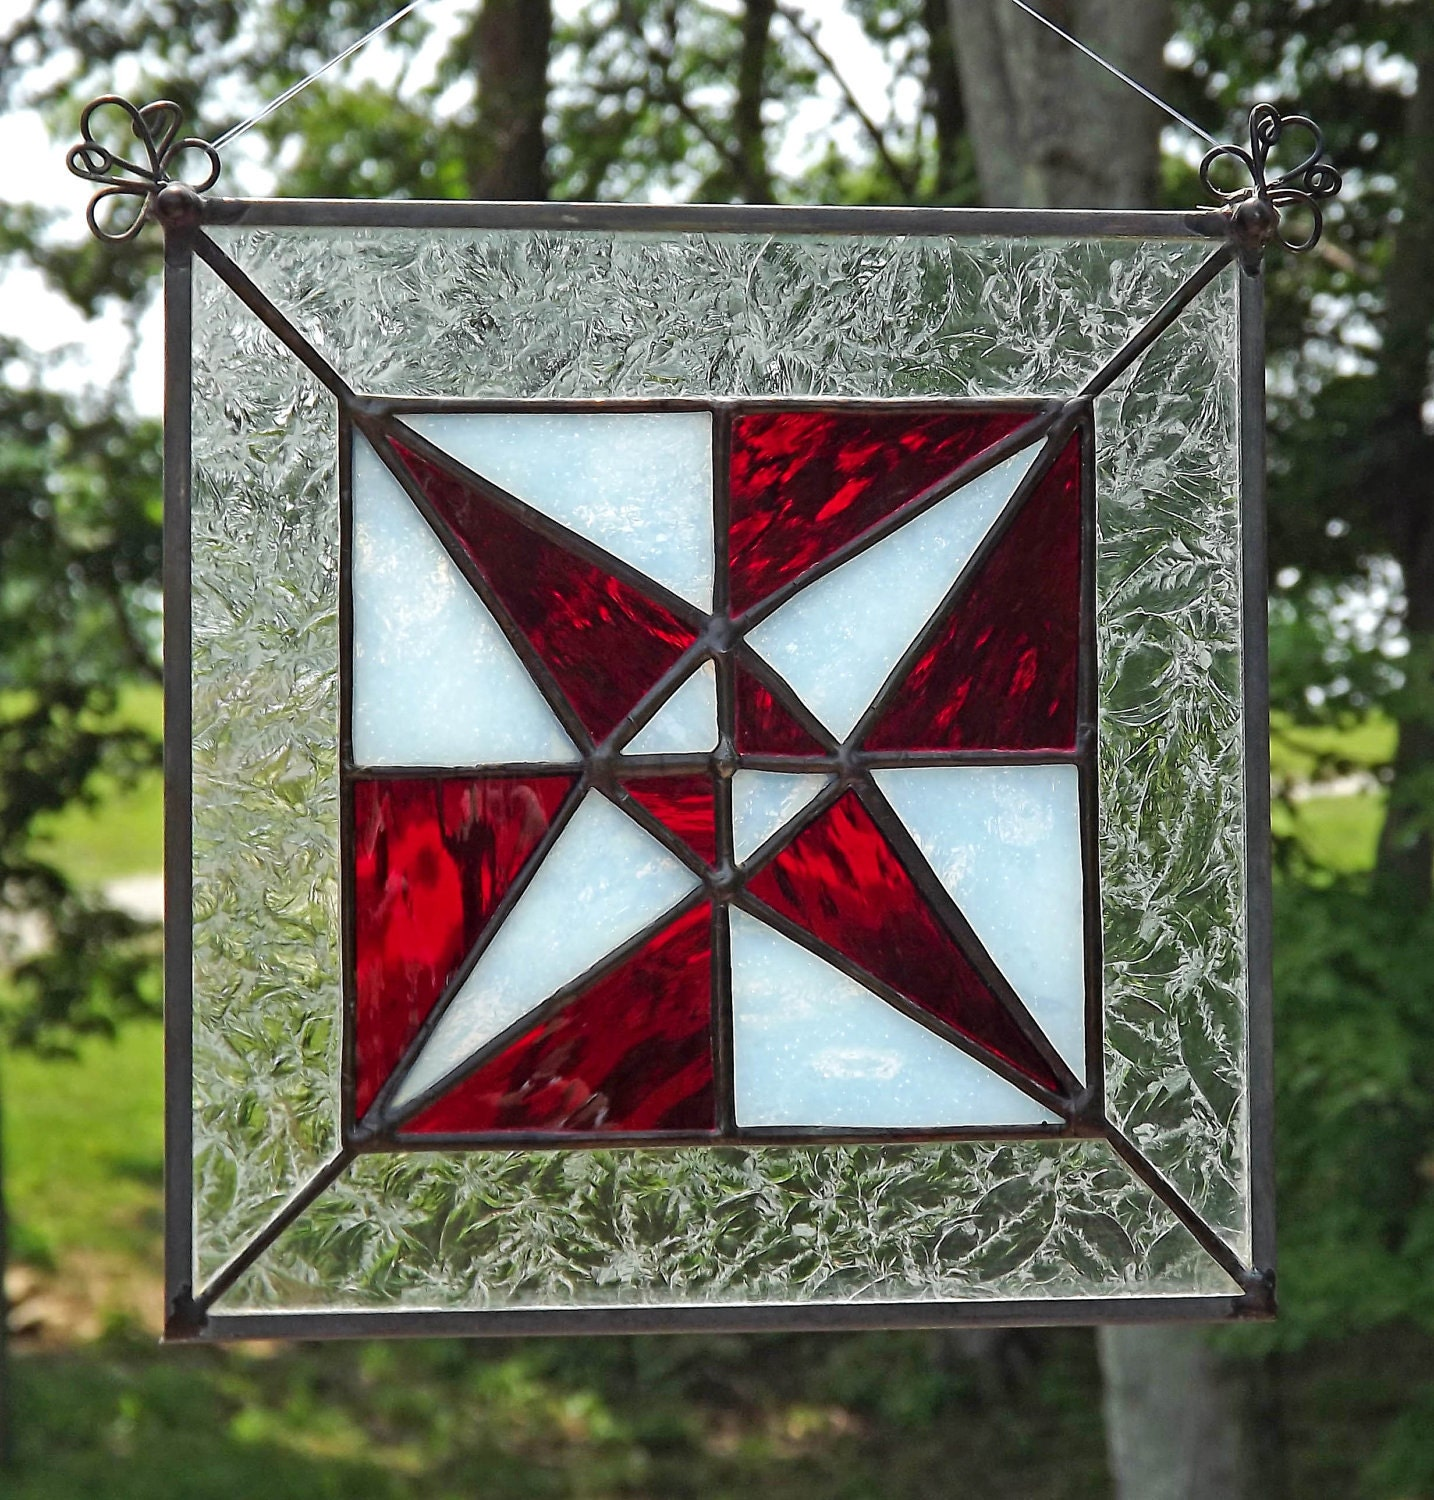 Stained glass suncatcher quilt block panel dragonfly red for Window pane quilt design